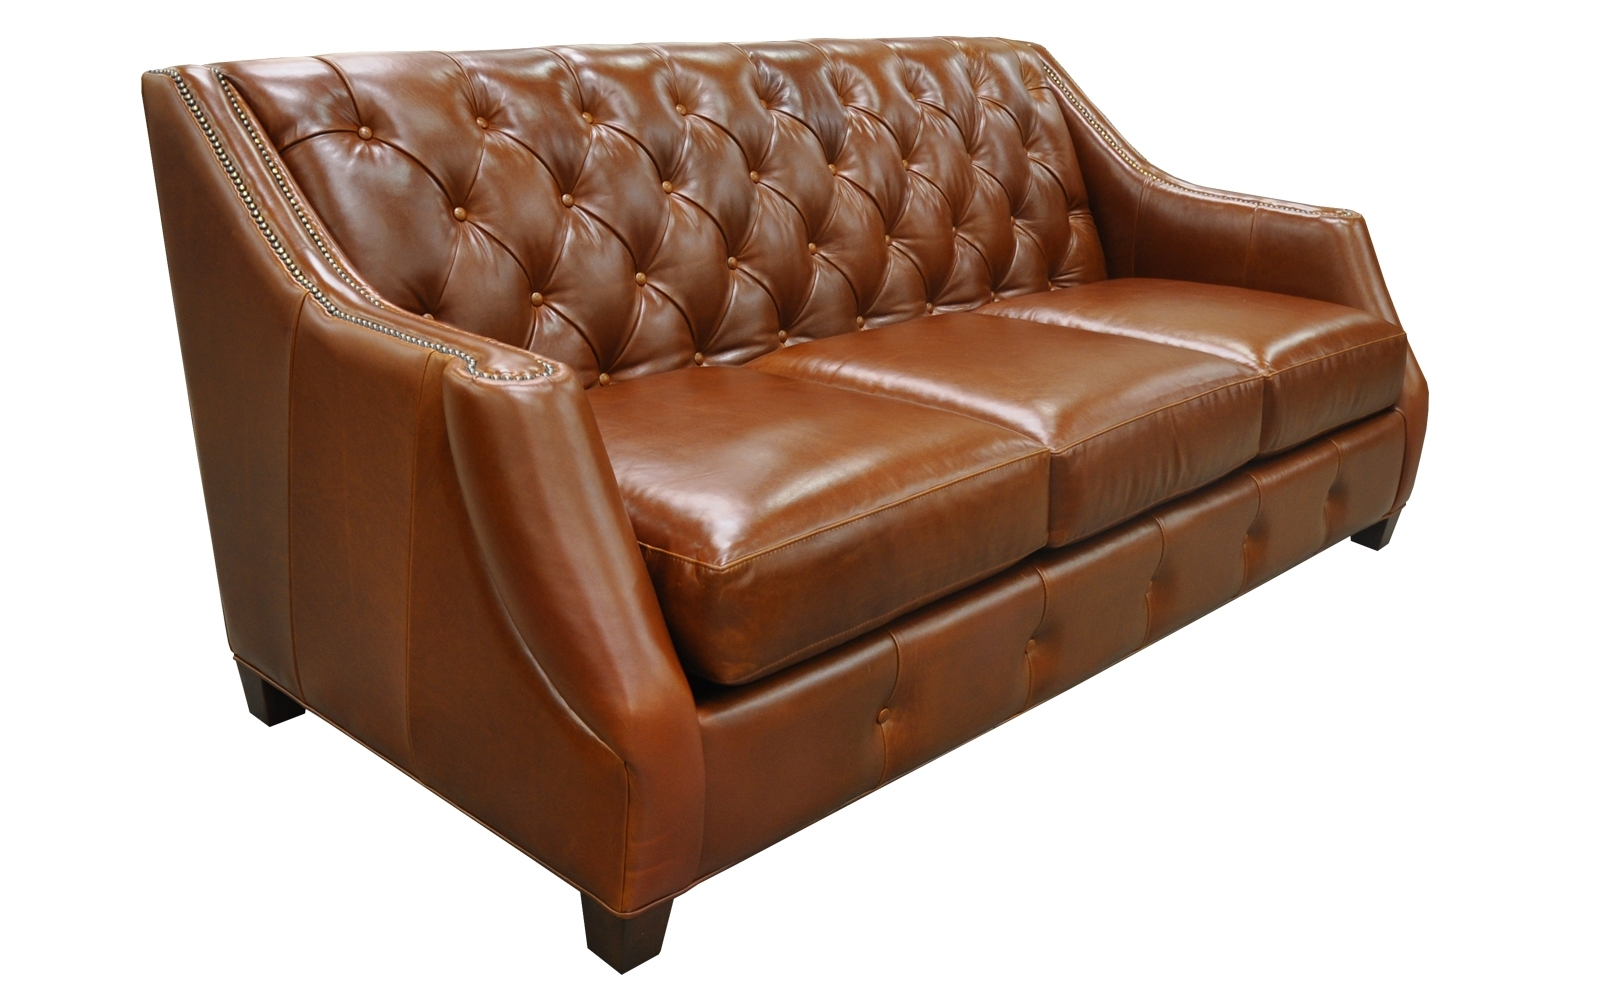 Scarborough Sectional Available – Omnia Leather Throughout Scarborough Sectional Sofas (View 5 of 10)